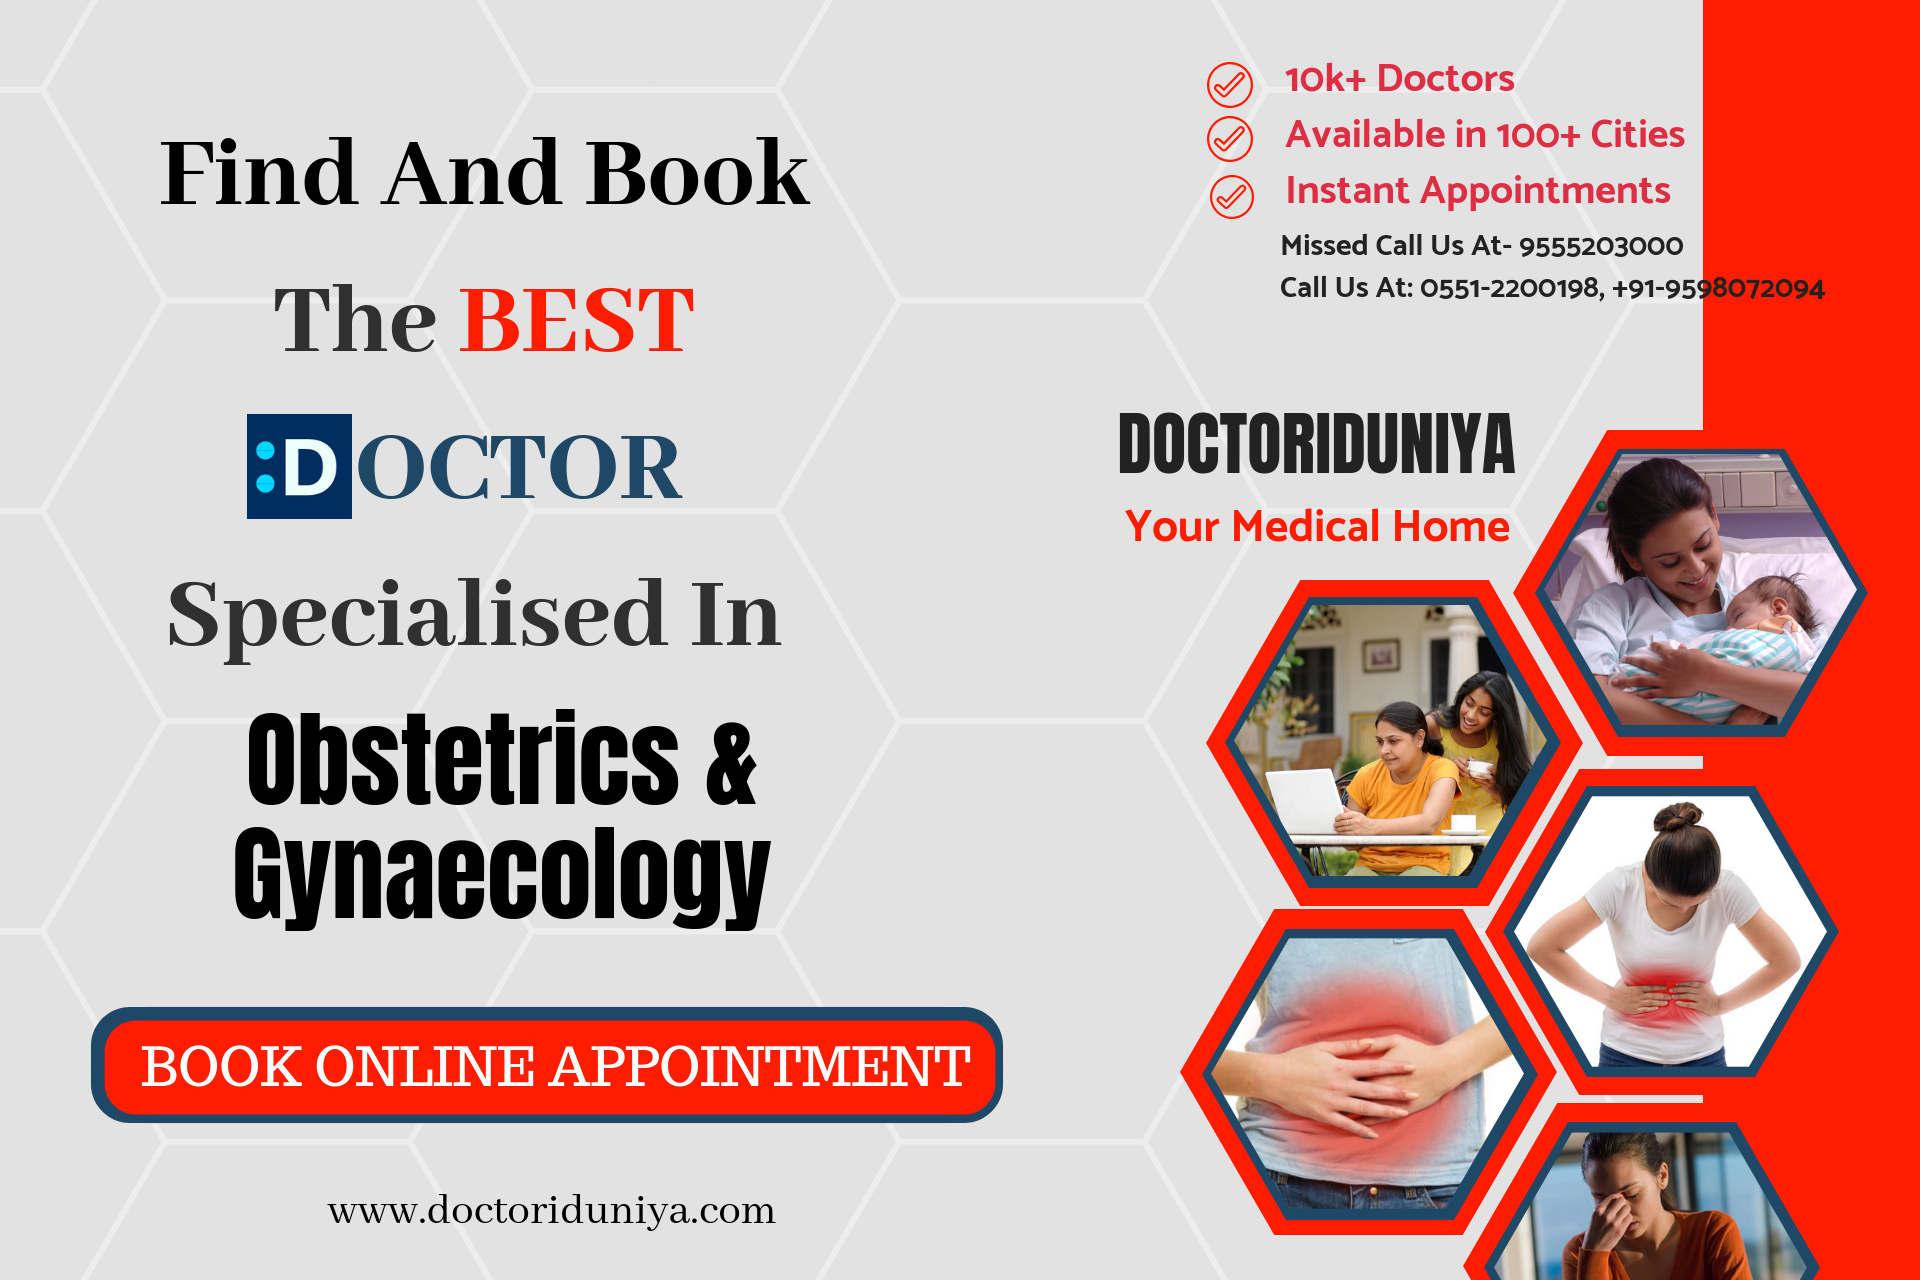 Find and book the best doctors specialized in obstetrics